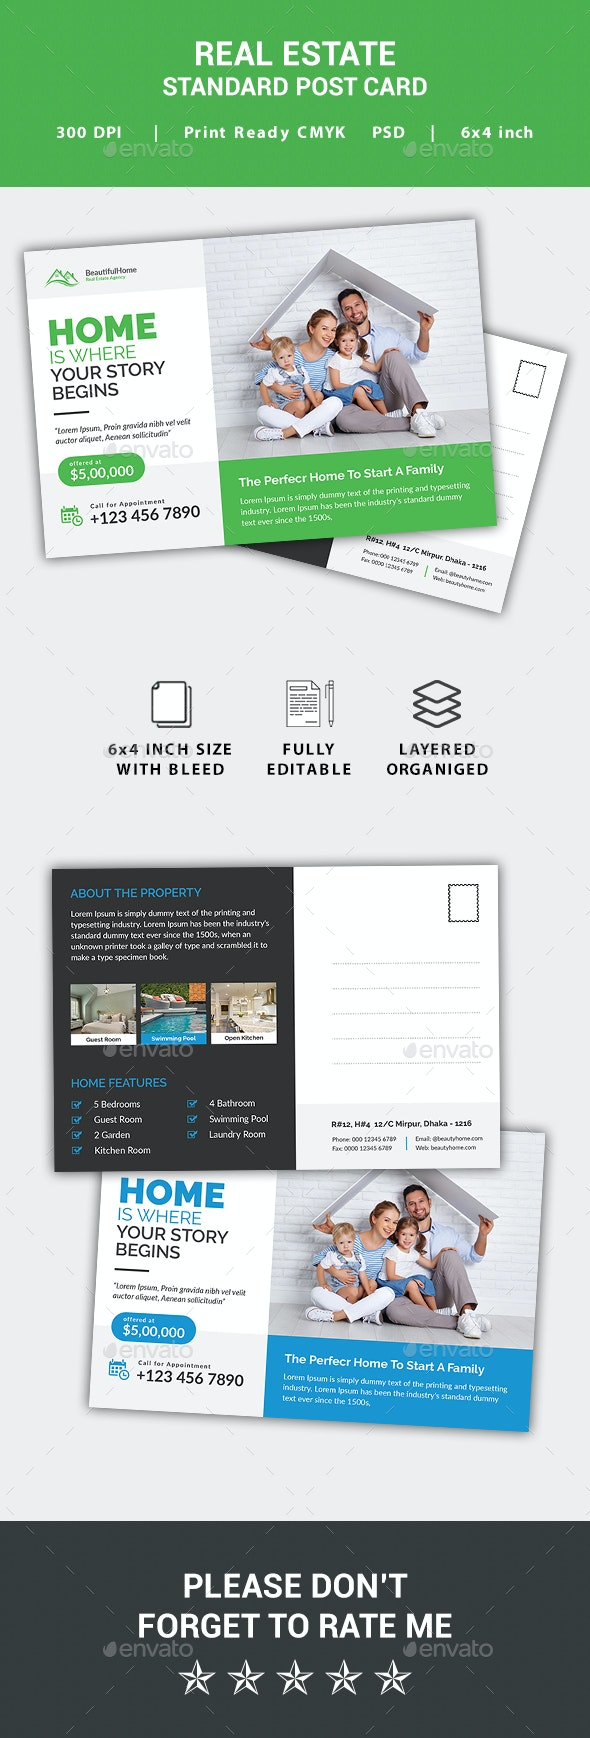 Real Estate Postcard - Cards & Invites Print Templates